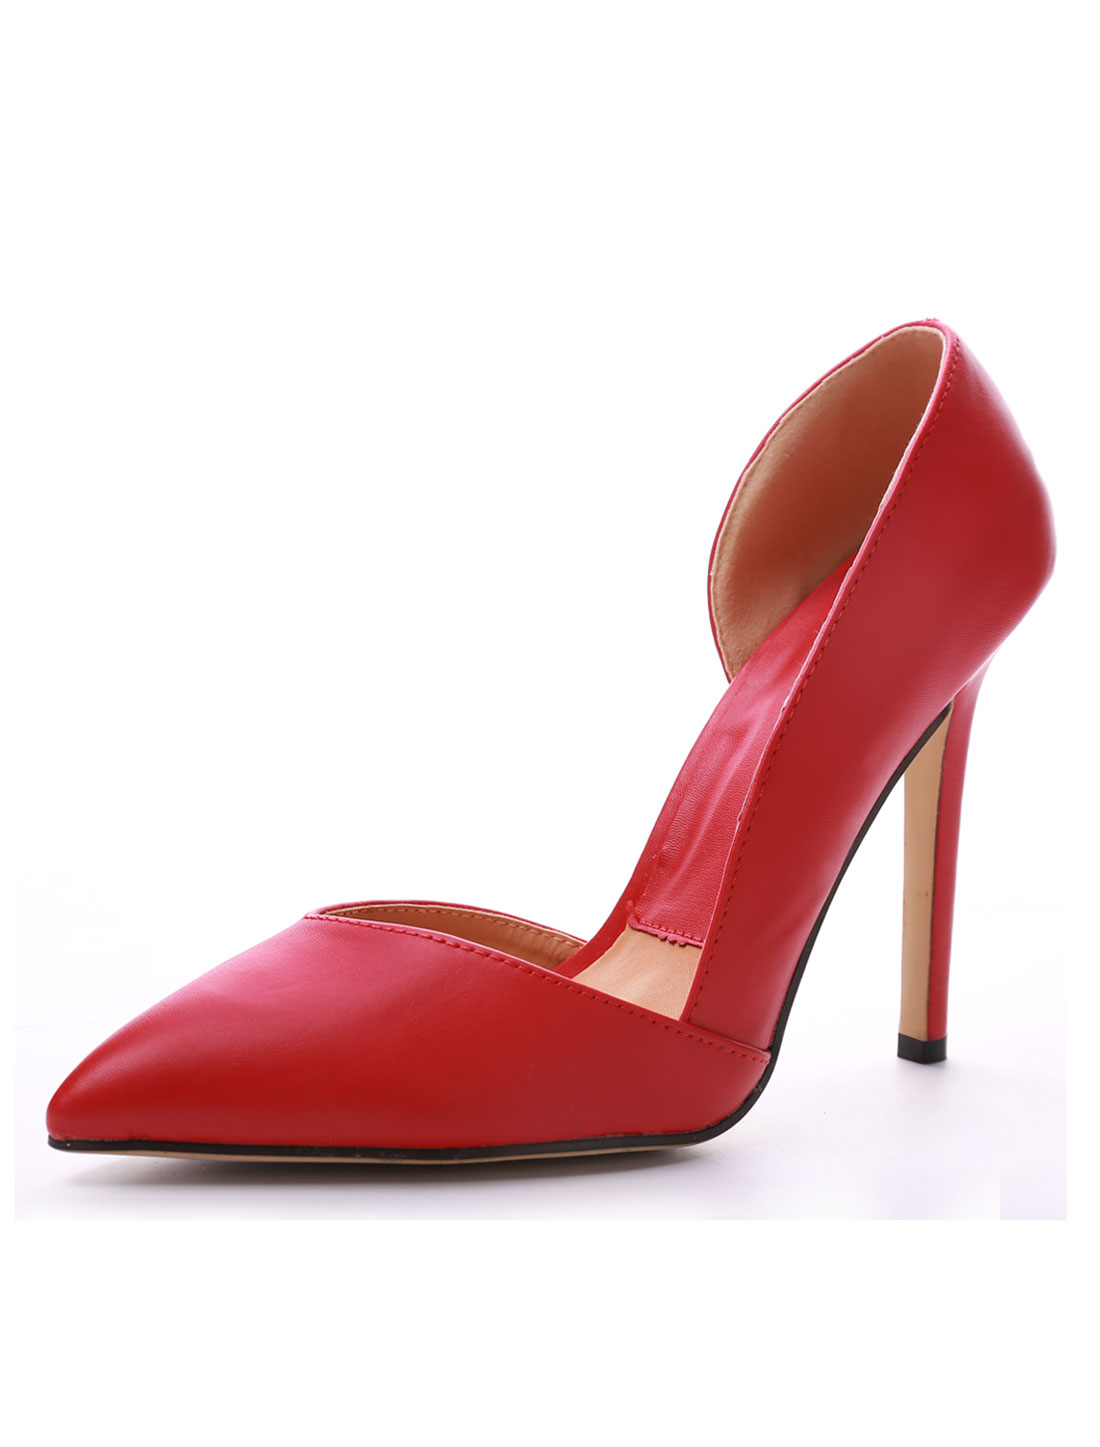 Women Side Coutout Pointed Toe Stiletto Heels Pumps Red US 8